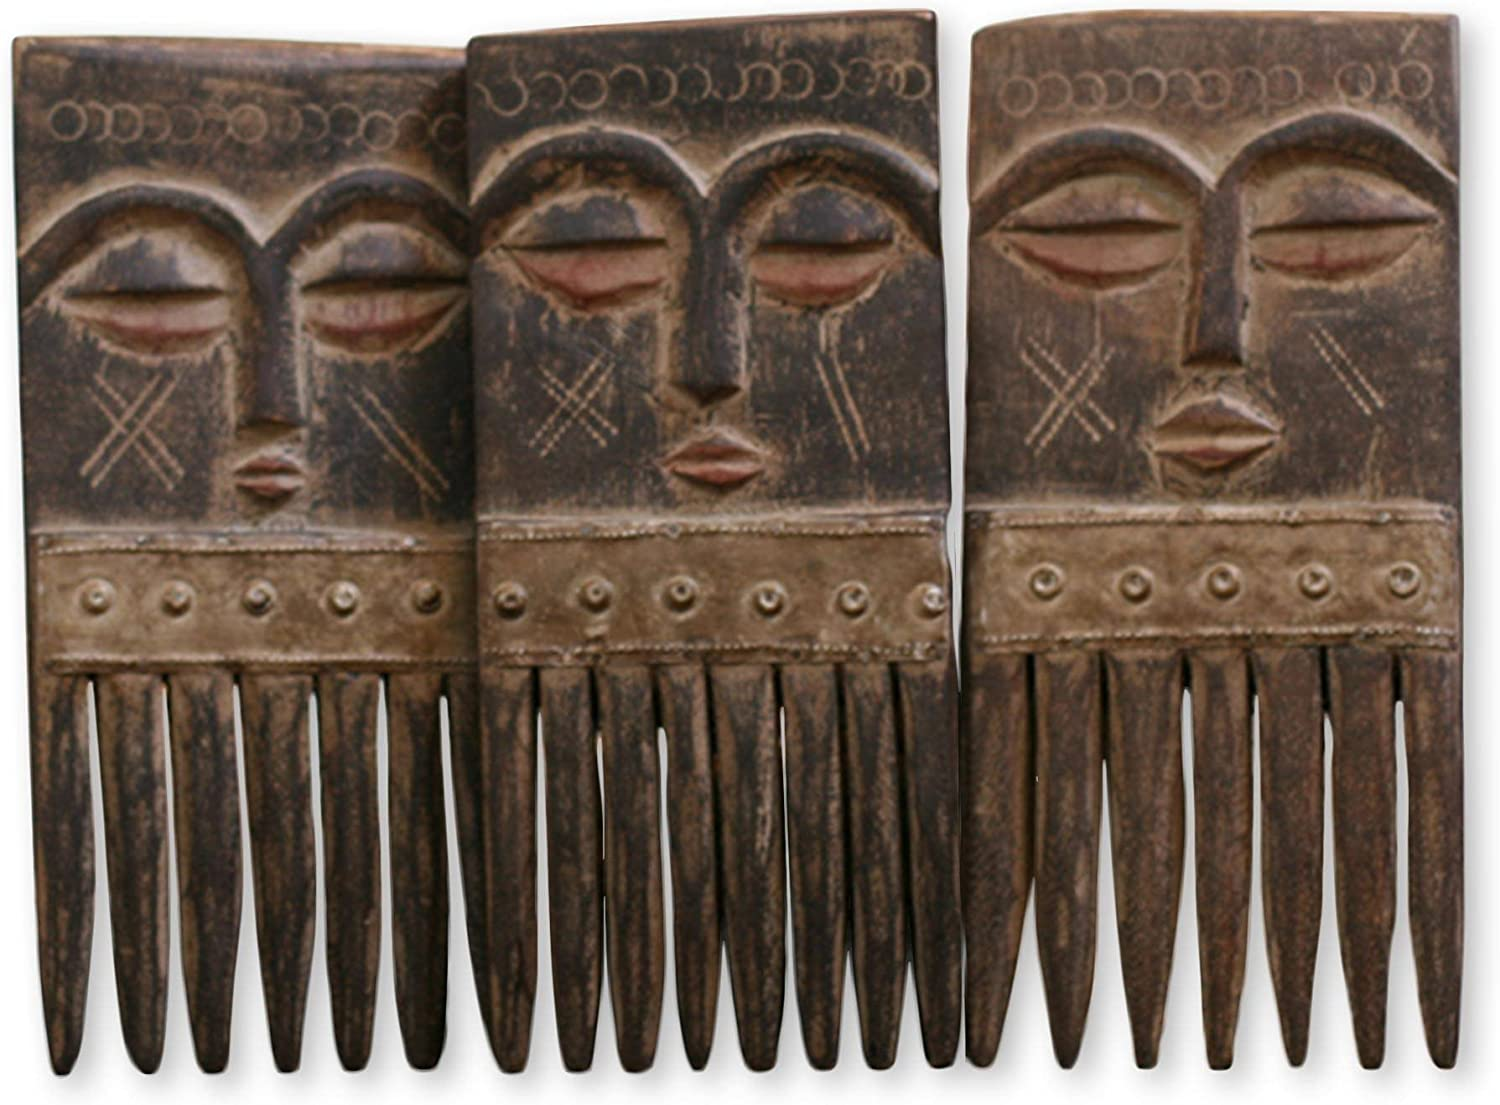 NOVICA Handcrafted Carved Brown Wood Comb Sculptures with Faces Wall Art, Ashanti Wisdom' (Set of 3)